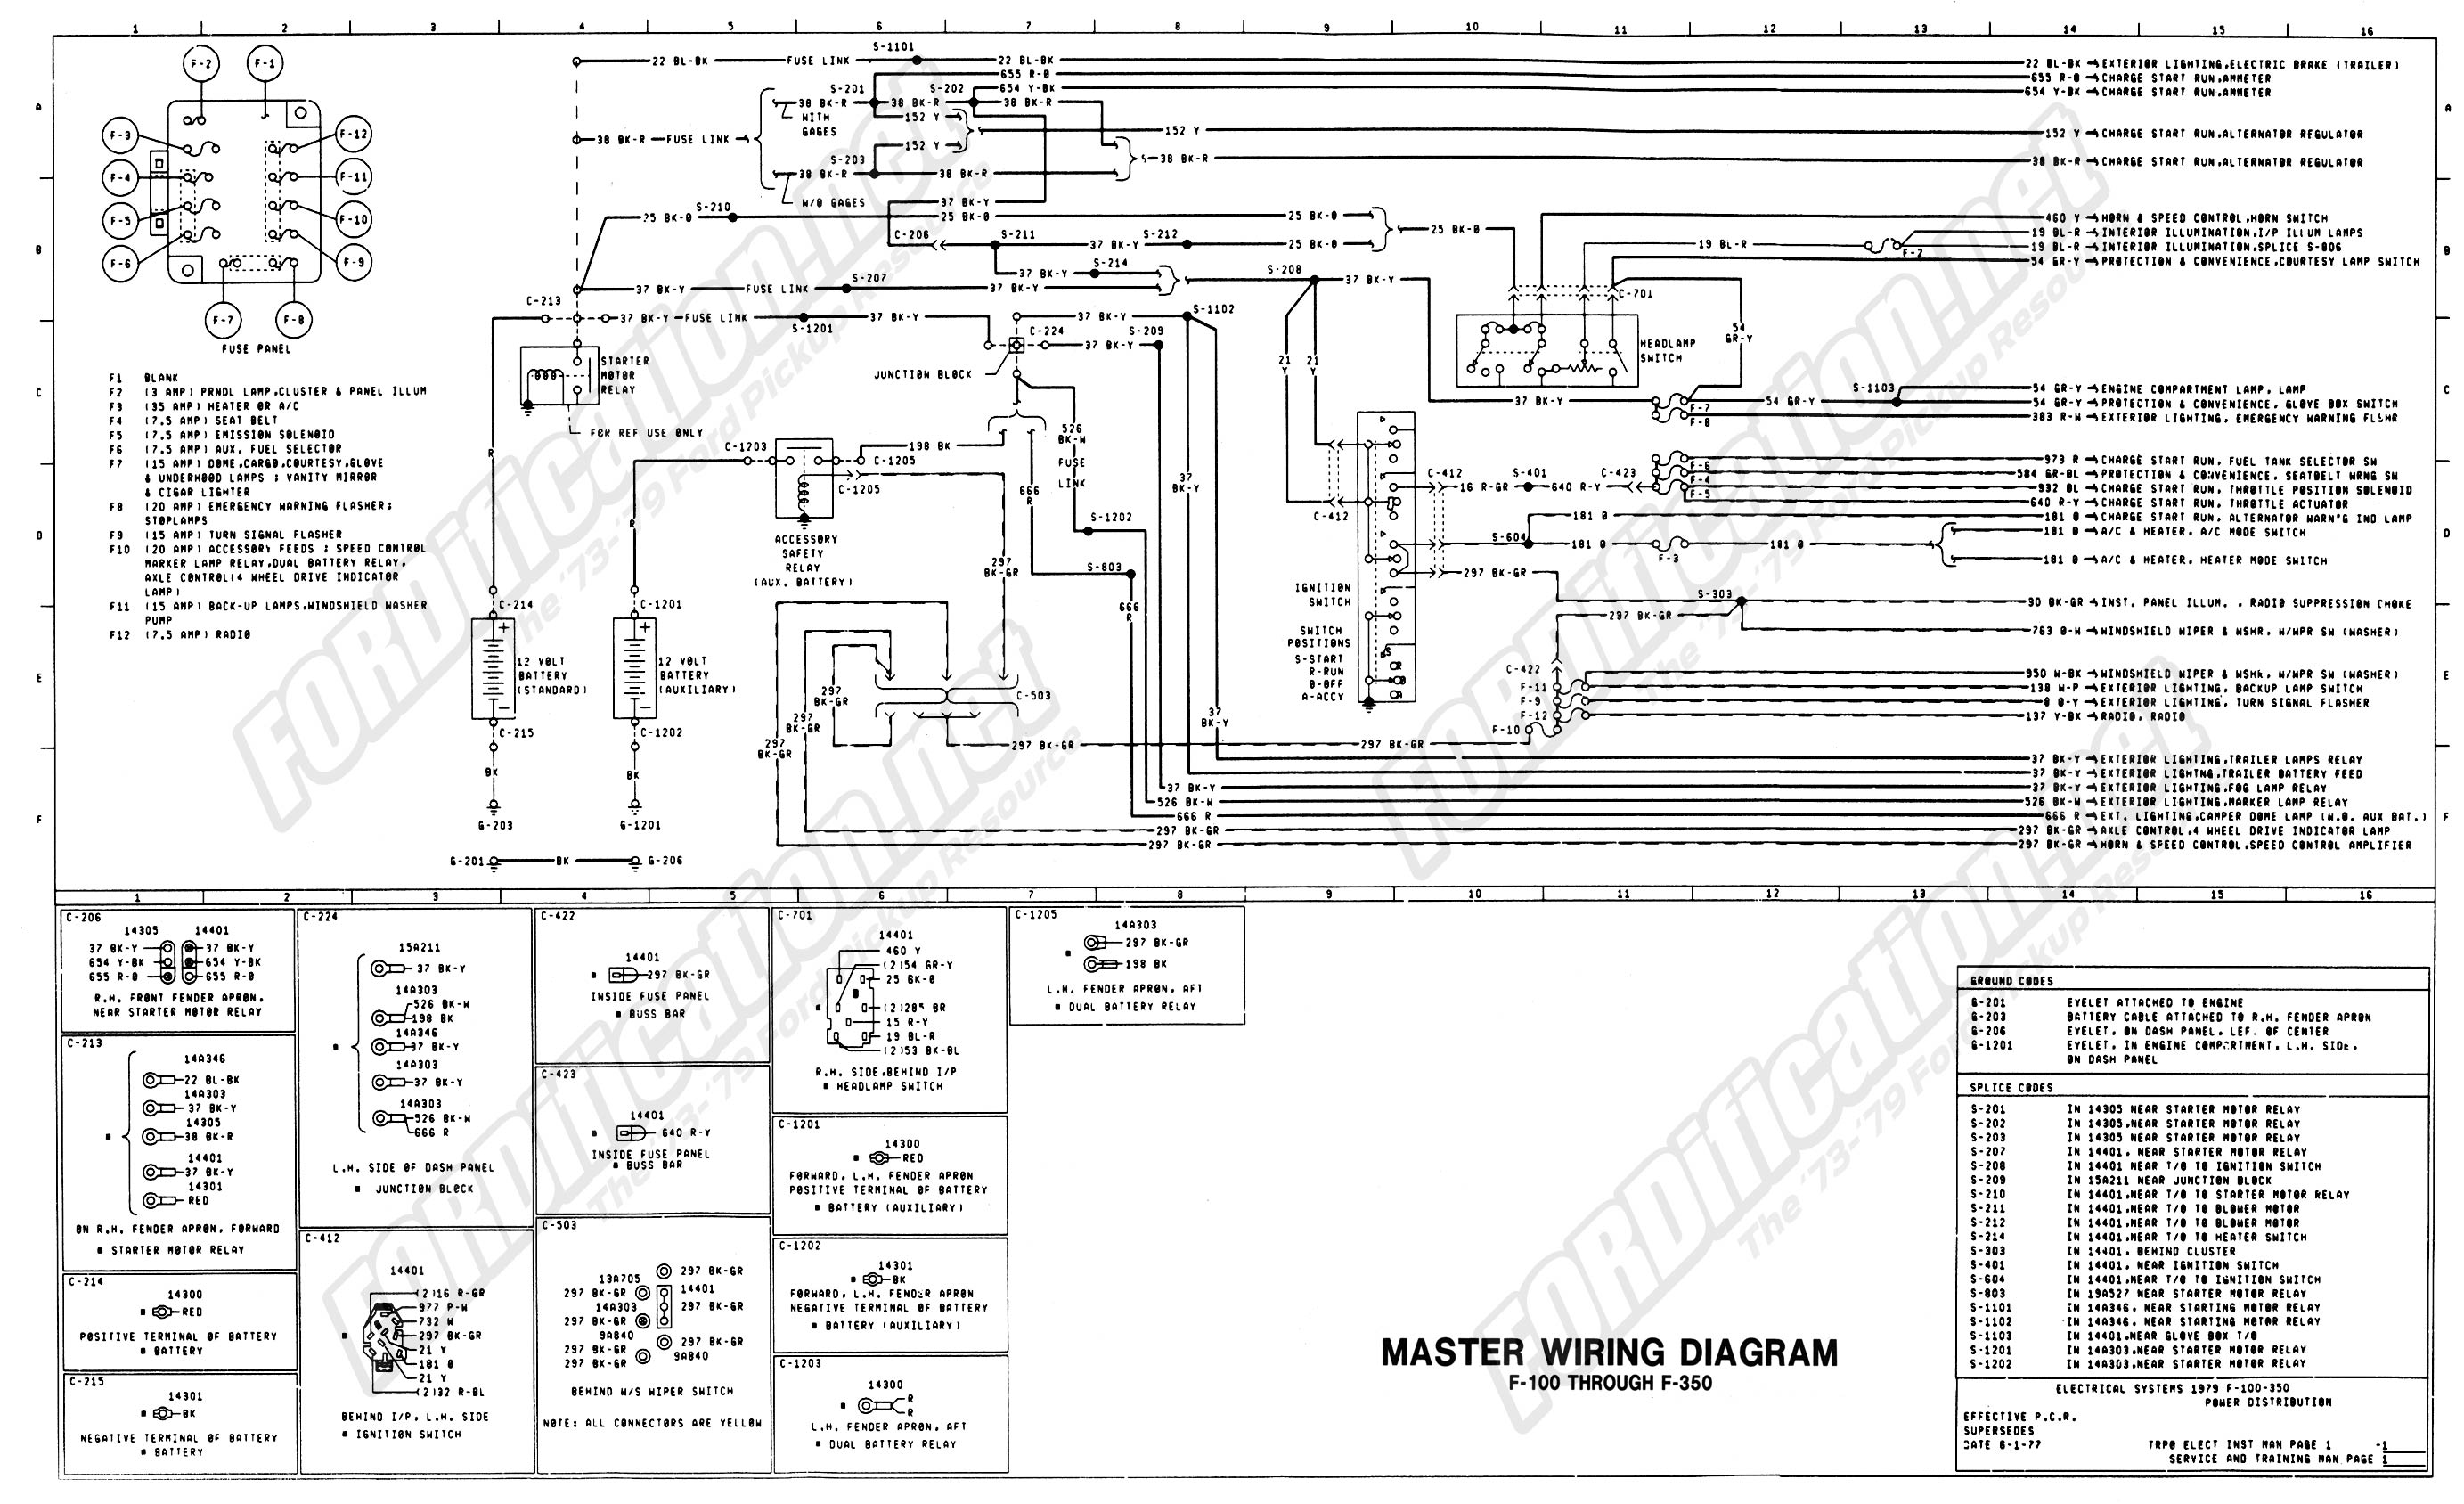 wiring_79master_1of9 1973 1979 ford truck wiring diagrams & schematics fordification net  at webbmarketing.co